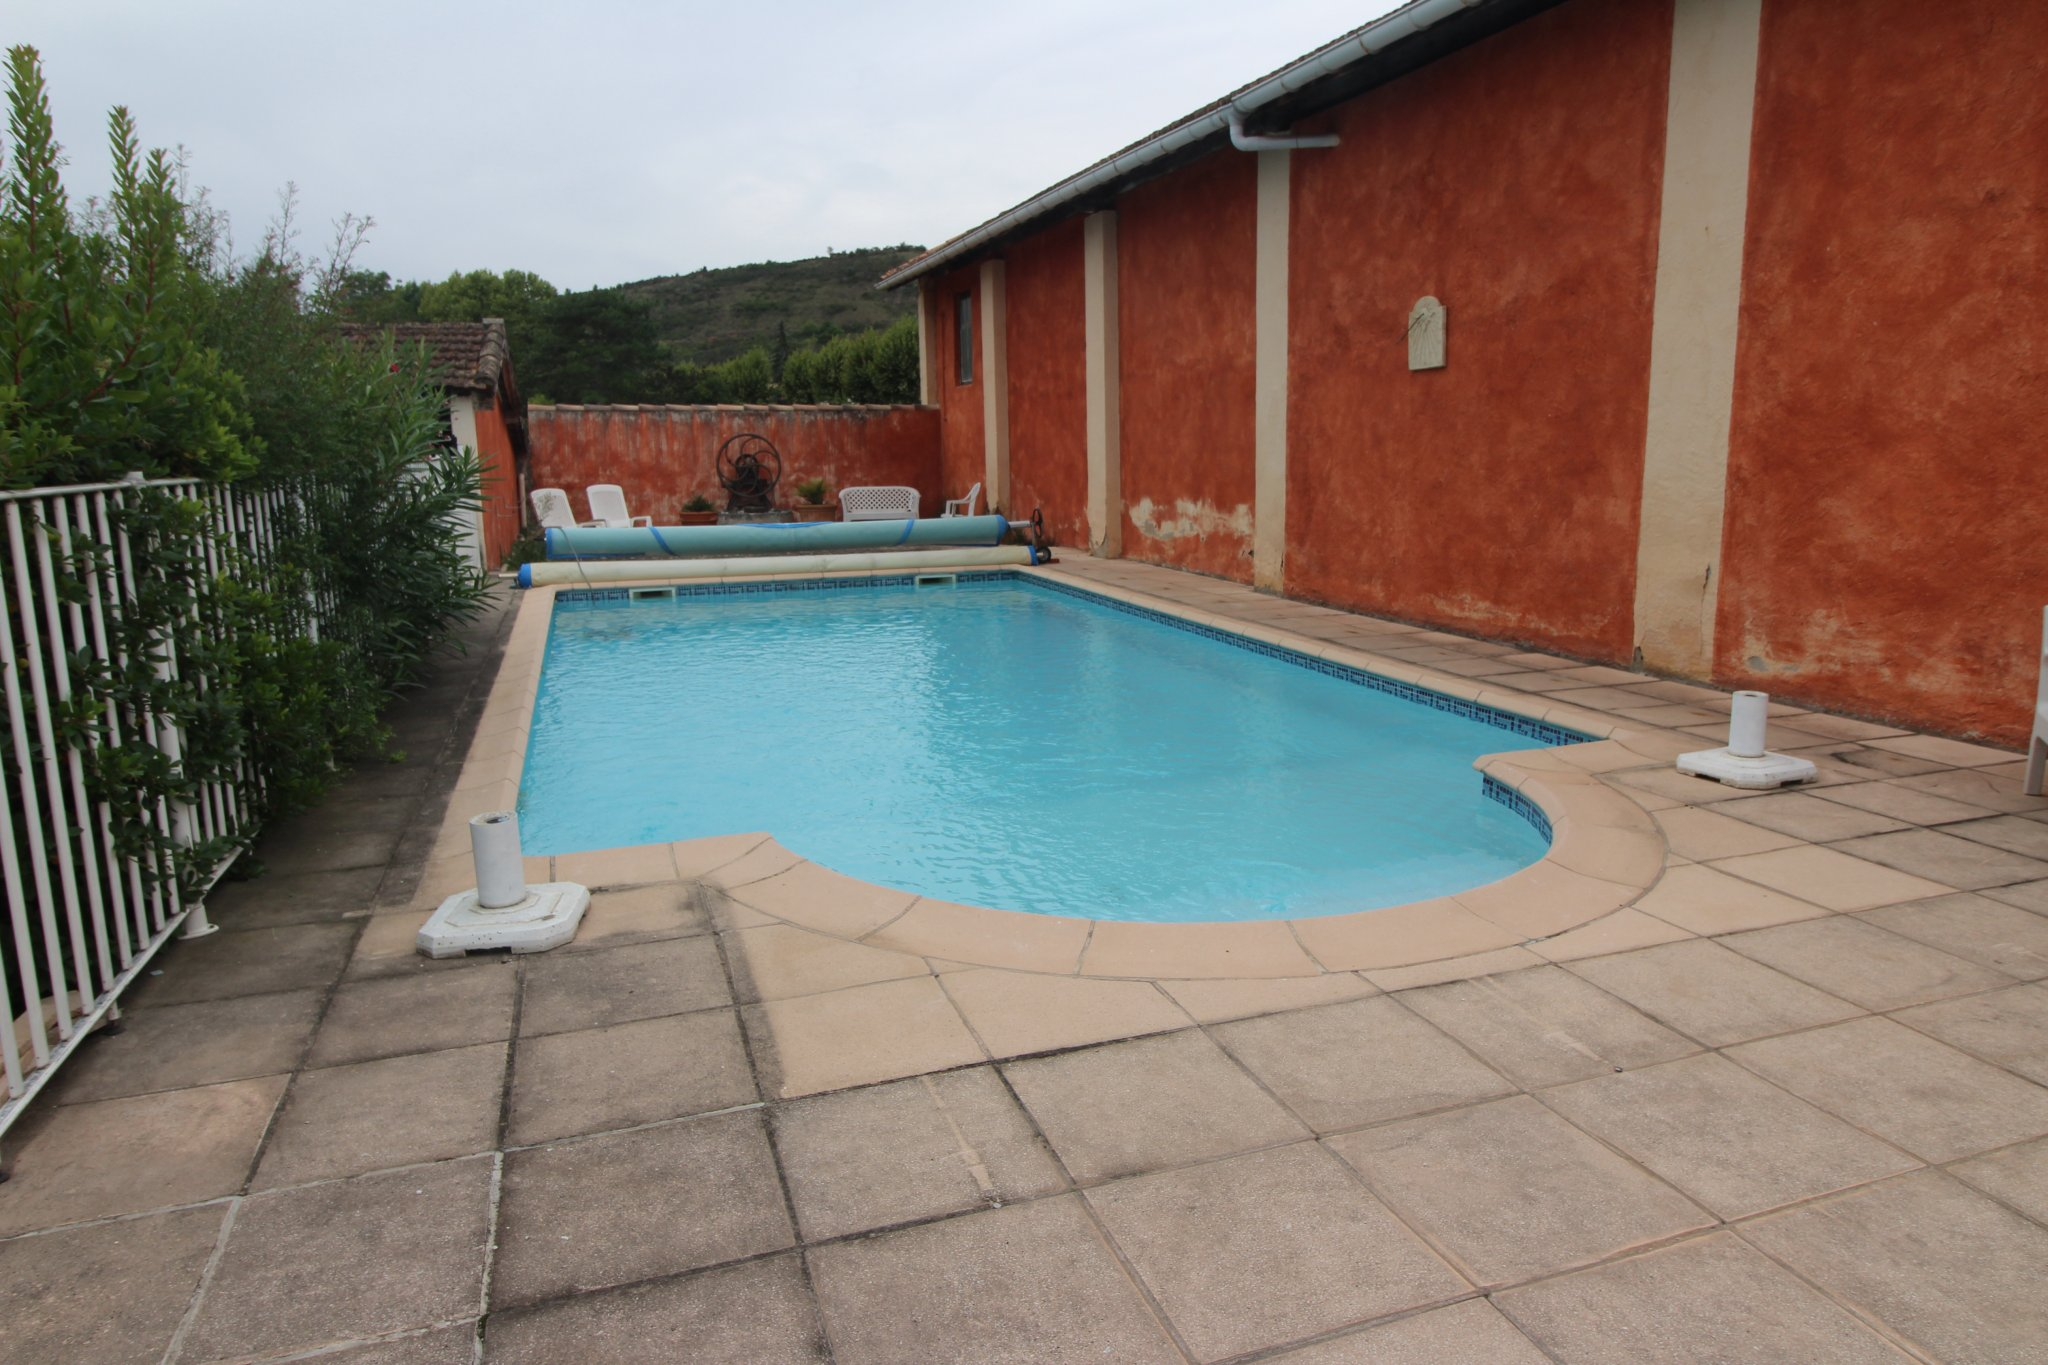 Main Photo of a 6 bedroom  Town House for sale